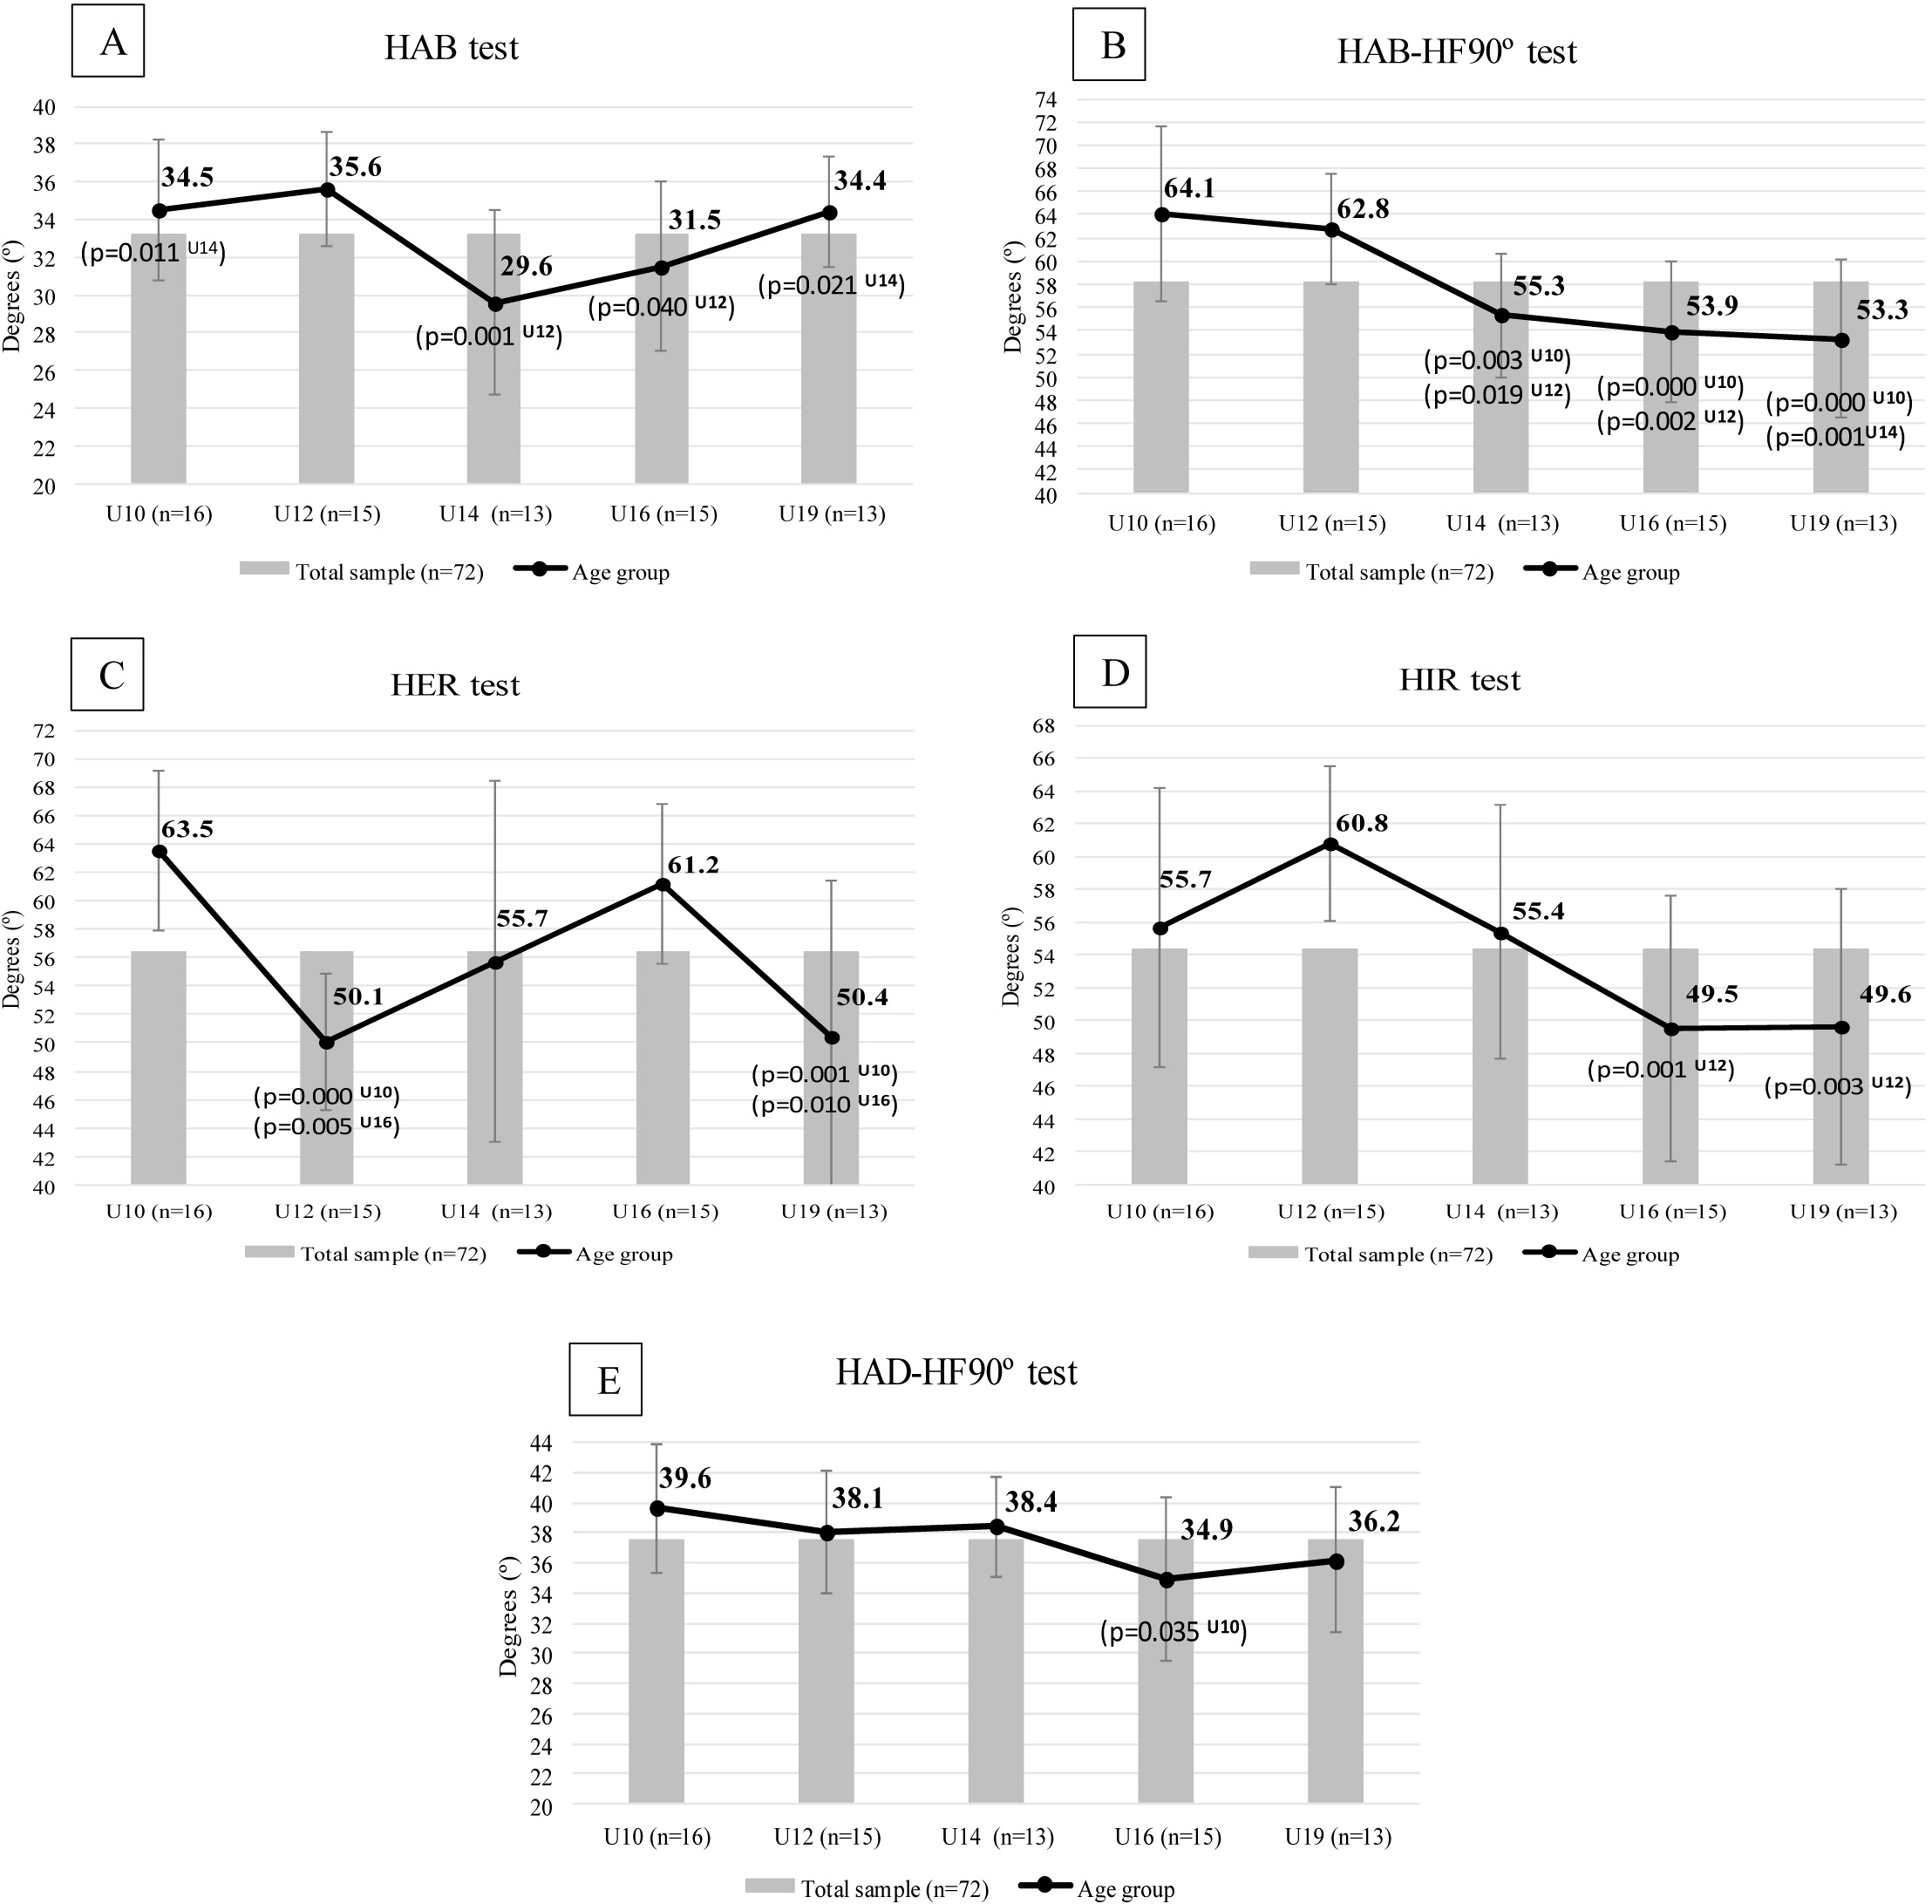 Age-related differences in flexibility in soccer players 8–19 years